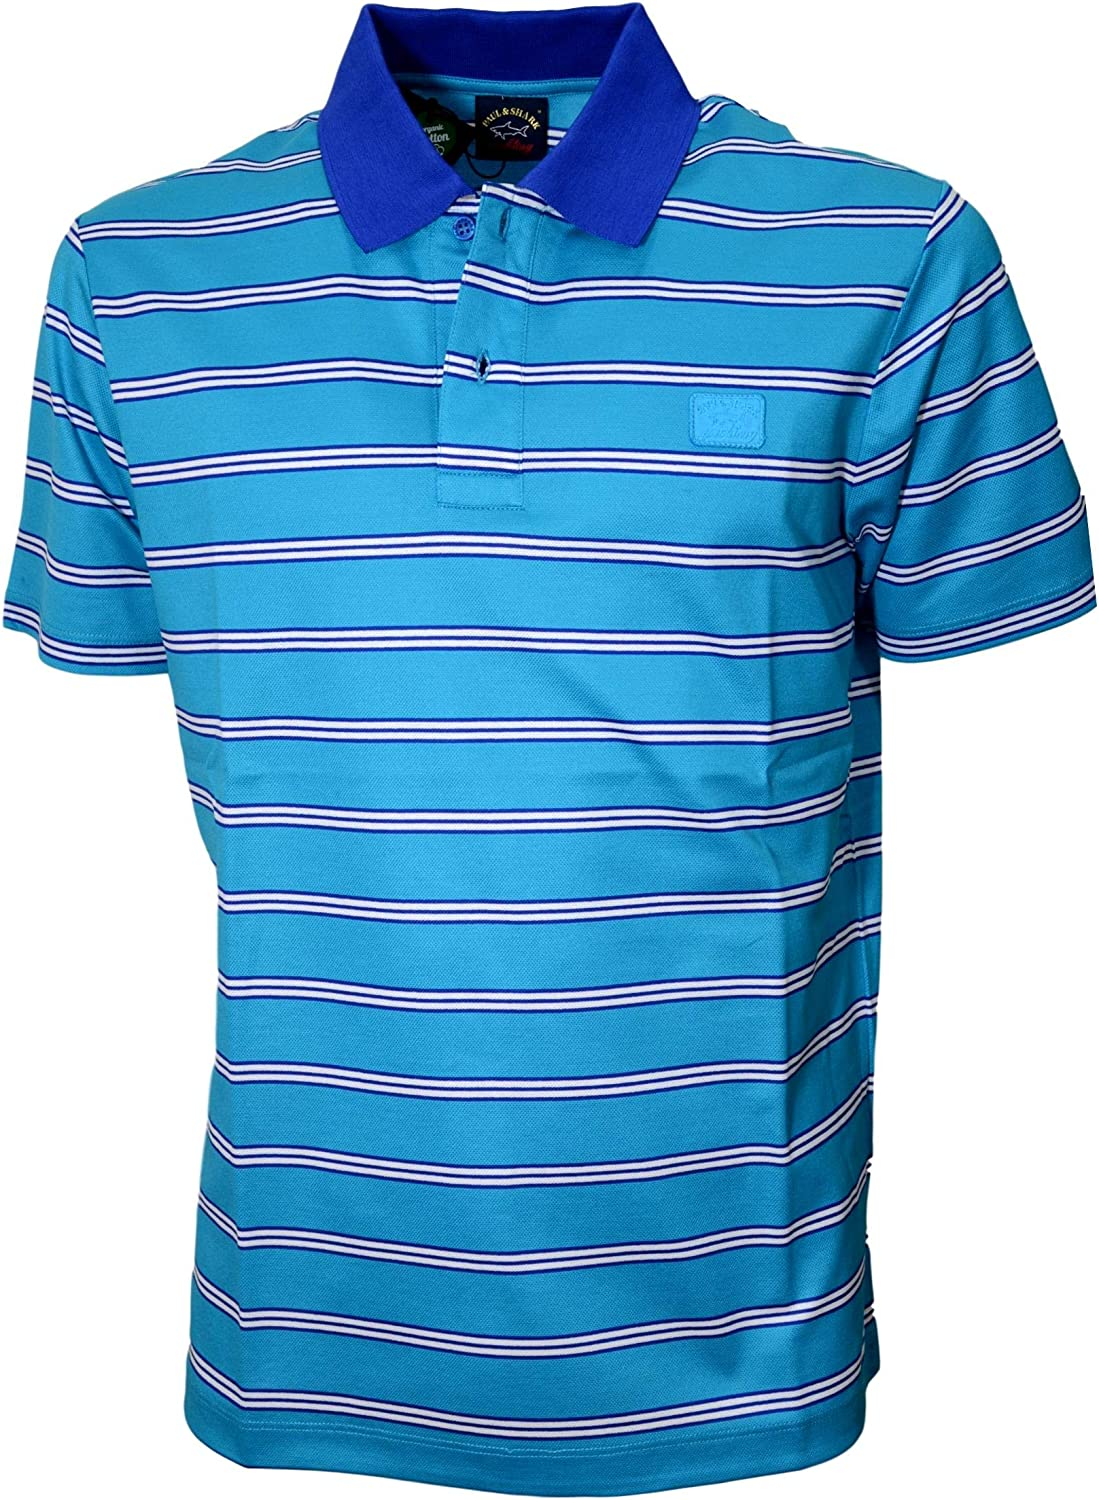 PAUL SHARK Yachting Polo hombre E20P1290 rayas algodón pique doble MERCERIZED: Amazon.es: Ropa y accesorios